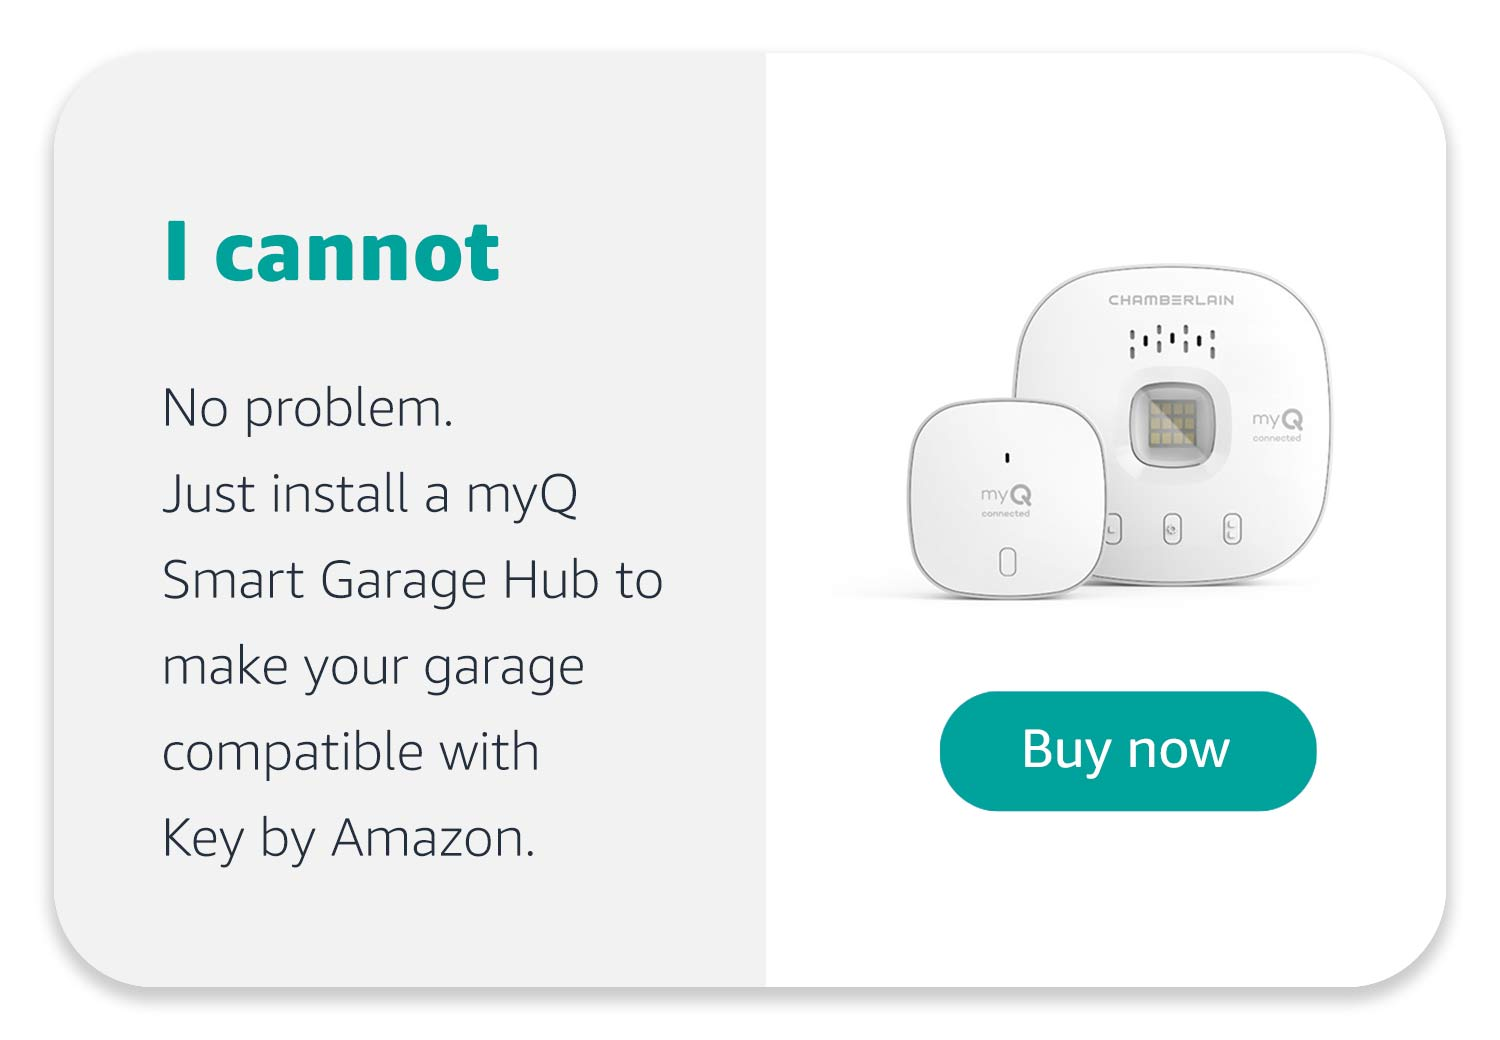 I cannot. No problem, Just install a myQ Smart Garage Hub to make your garage compatible with Key by Amazon. Buy Now.